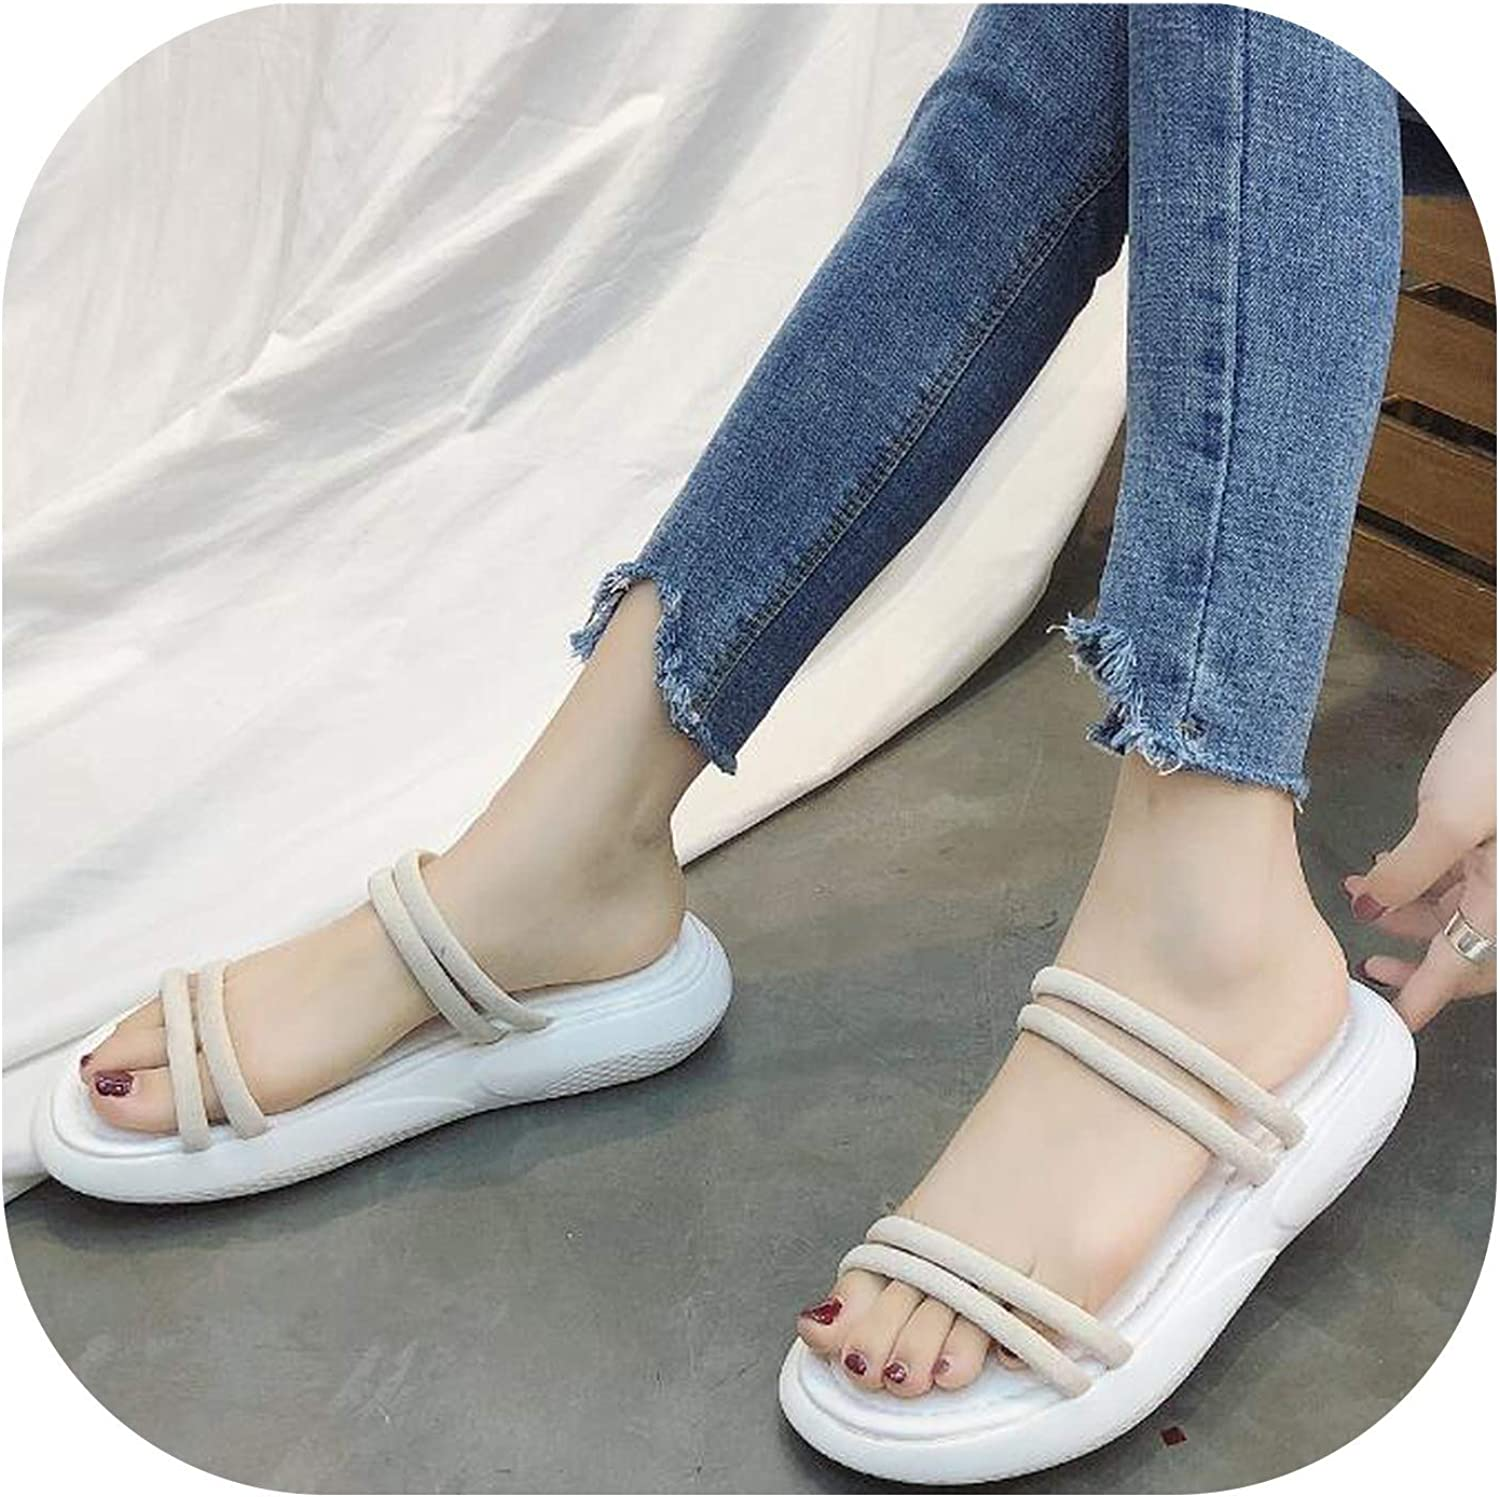 Gooding Day Fashion Leisure Ankle Strap Flat Women Sandals Fish Mouth Sandals Front Rear Strap Flat Sandals